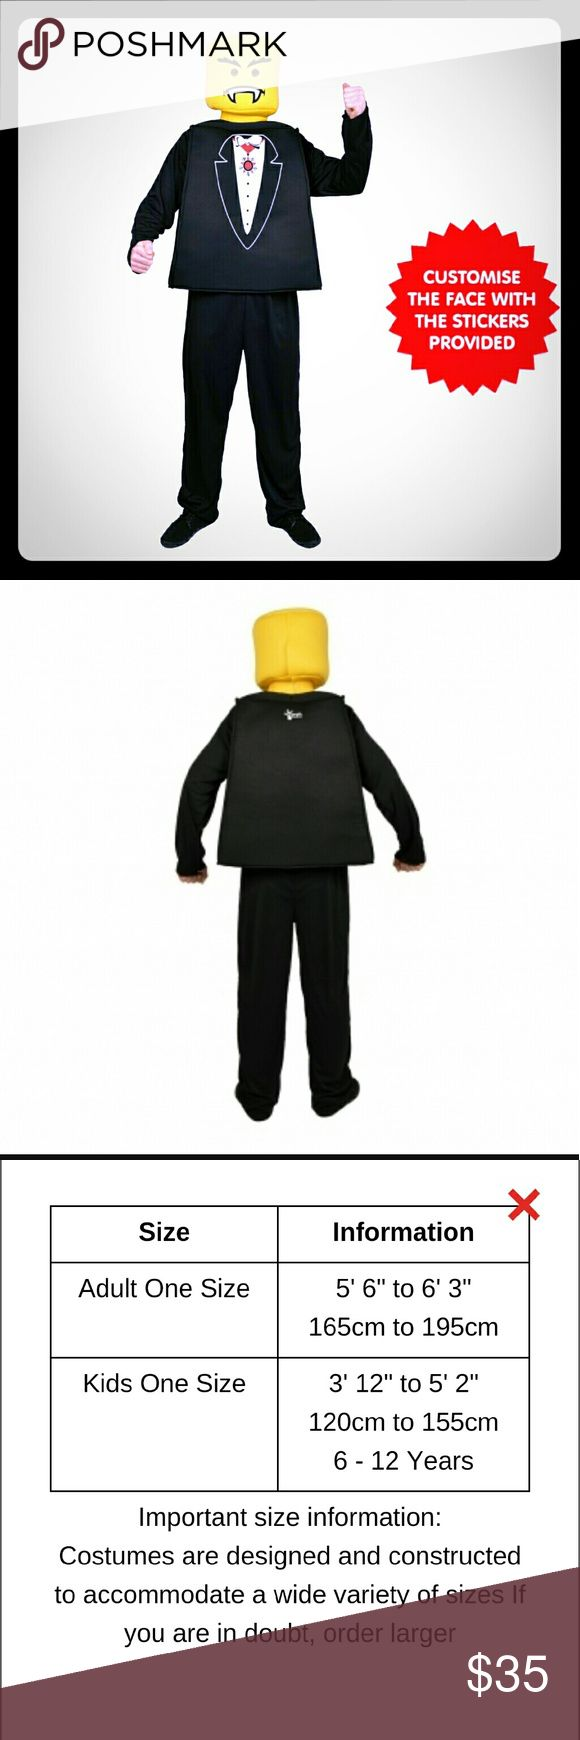 MR BLOCK HEAD VAMPIRE TUX COSTUME Complete three-piece costume: yellow foam headpiece with cut-out eyes, black foam top with printed gothic suit design, black pants/trousers. Use the three sets of stickers provided to customise the facial expressions so you're either a terror from Transylvania or a dapper hero. Endless anonymous fun makes it perfect for Halloween. Lego Shirts